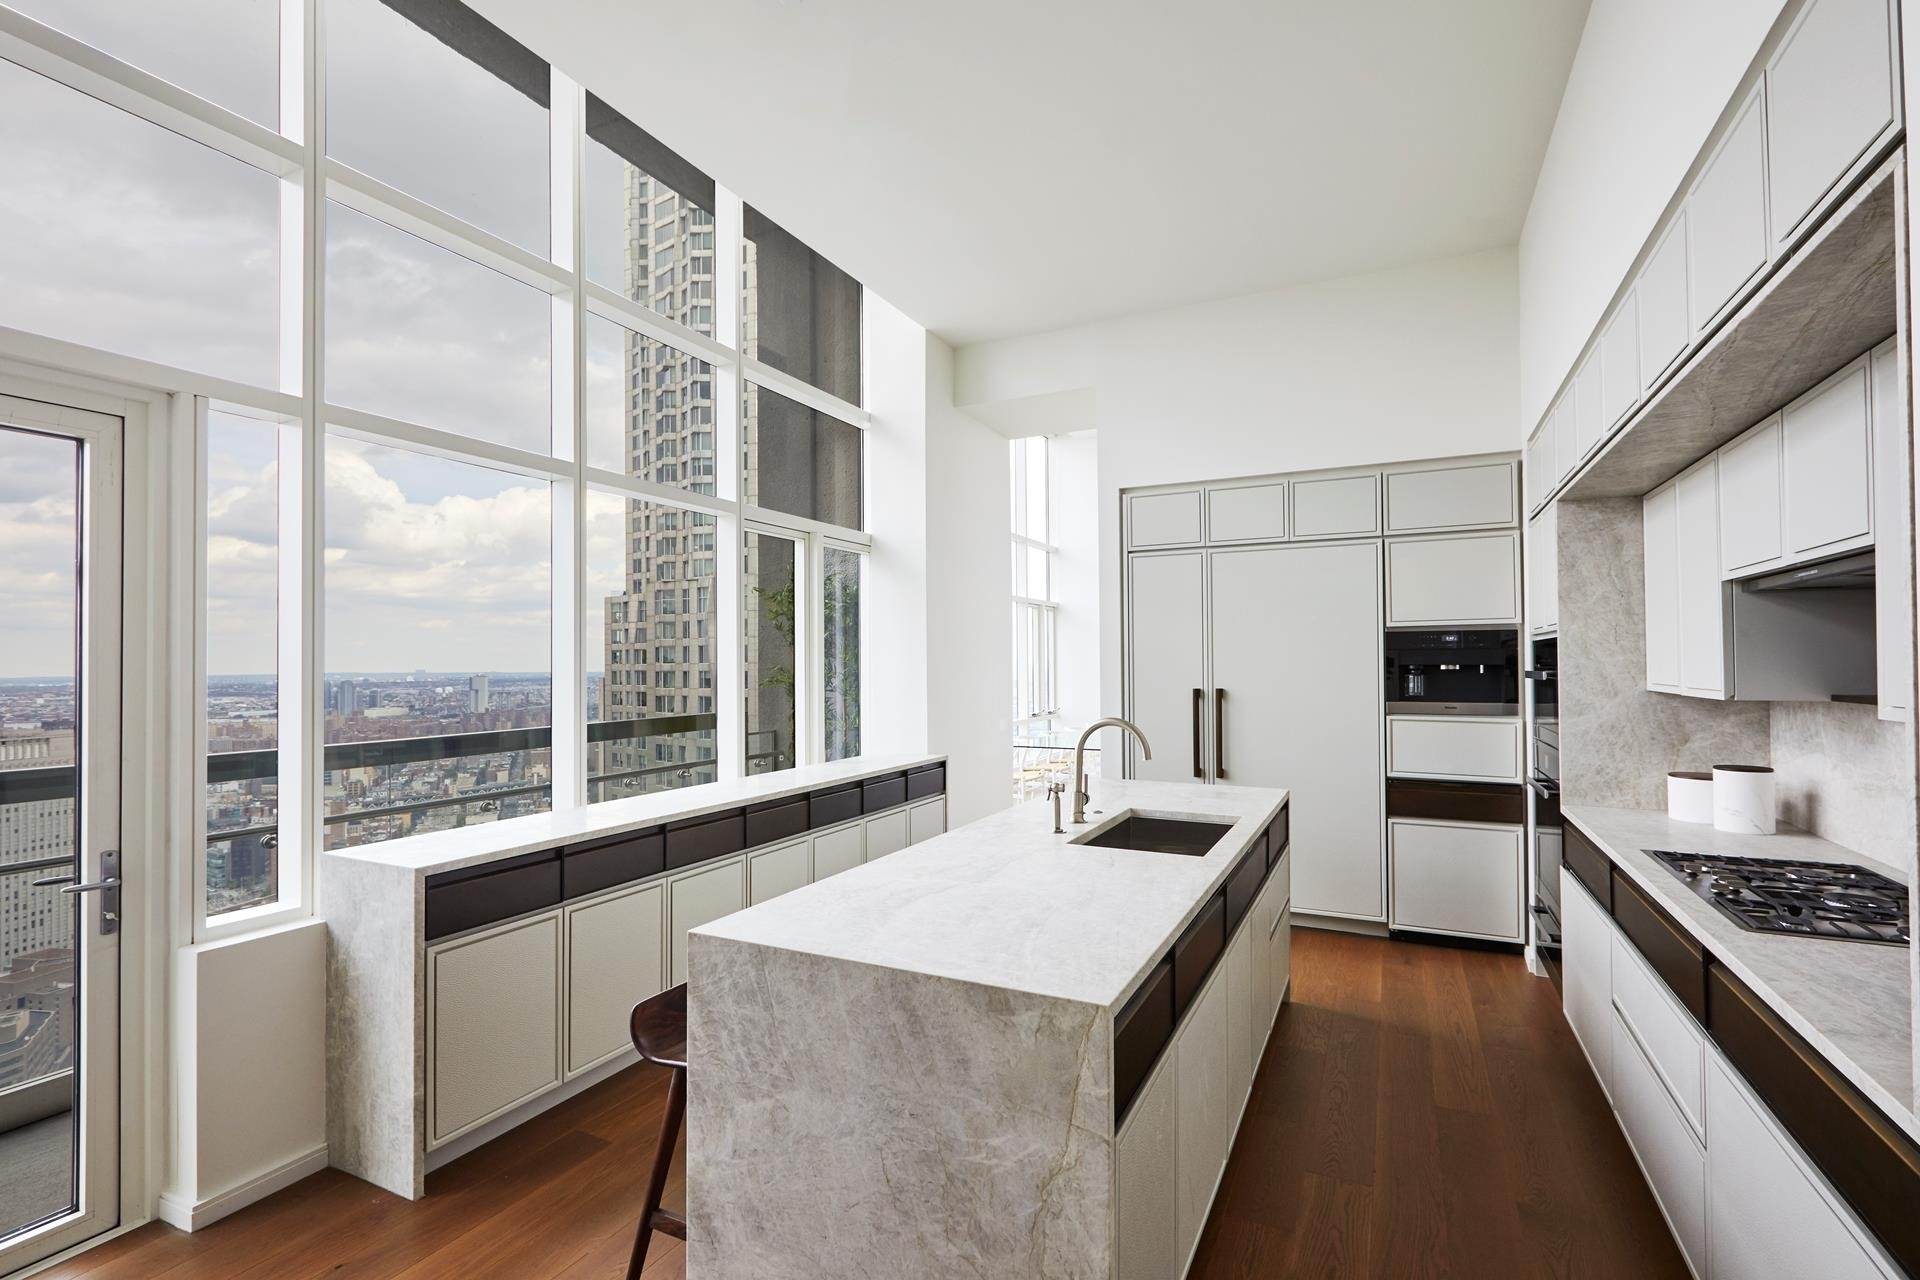 5. Condominiums for Sale at The Beekman Residences, 5 Beekman St, PH Financial District, New York, NY 10038